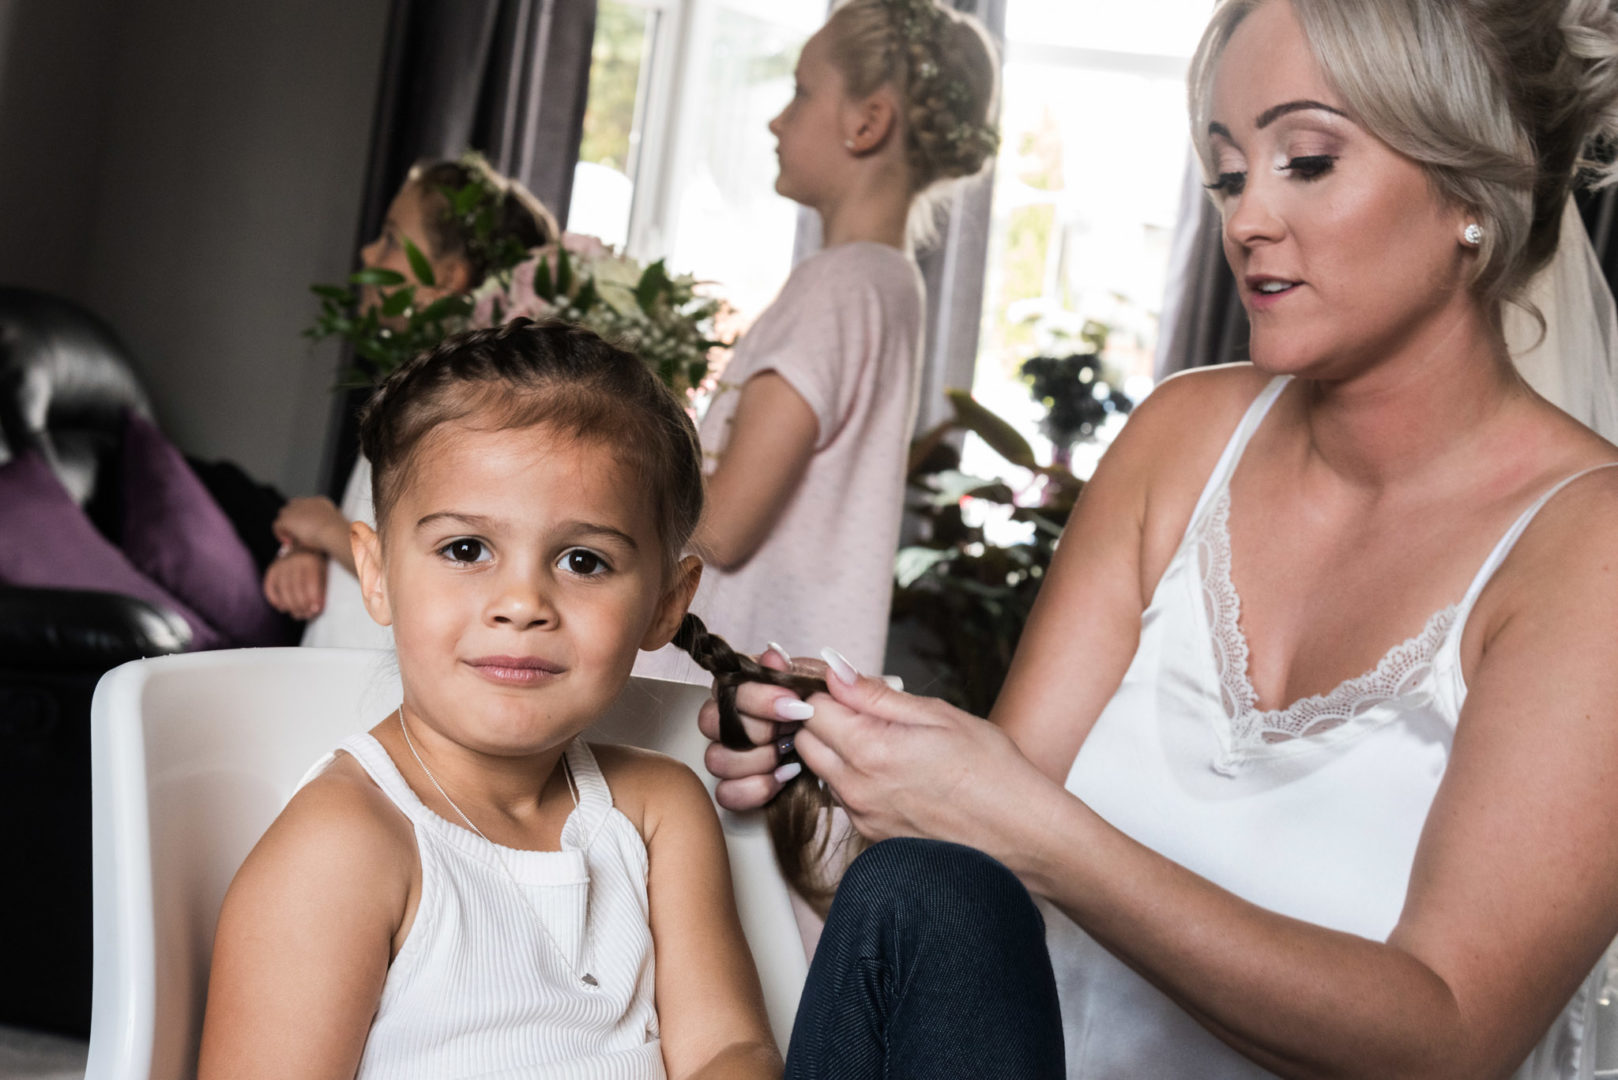 Coventry bride Carrie, helps a flowergirl with her hair.